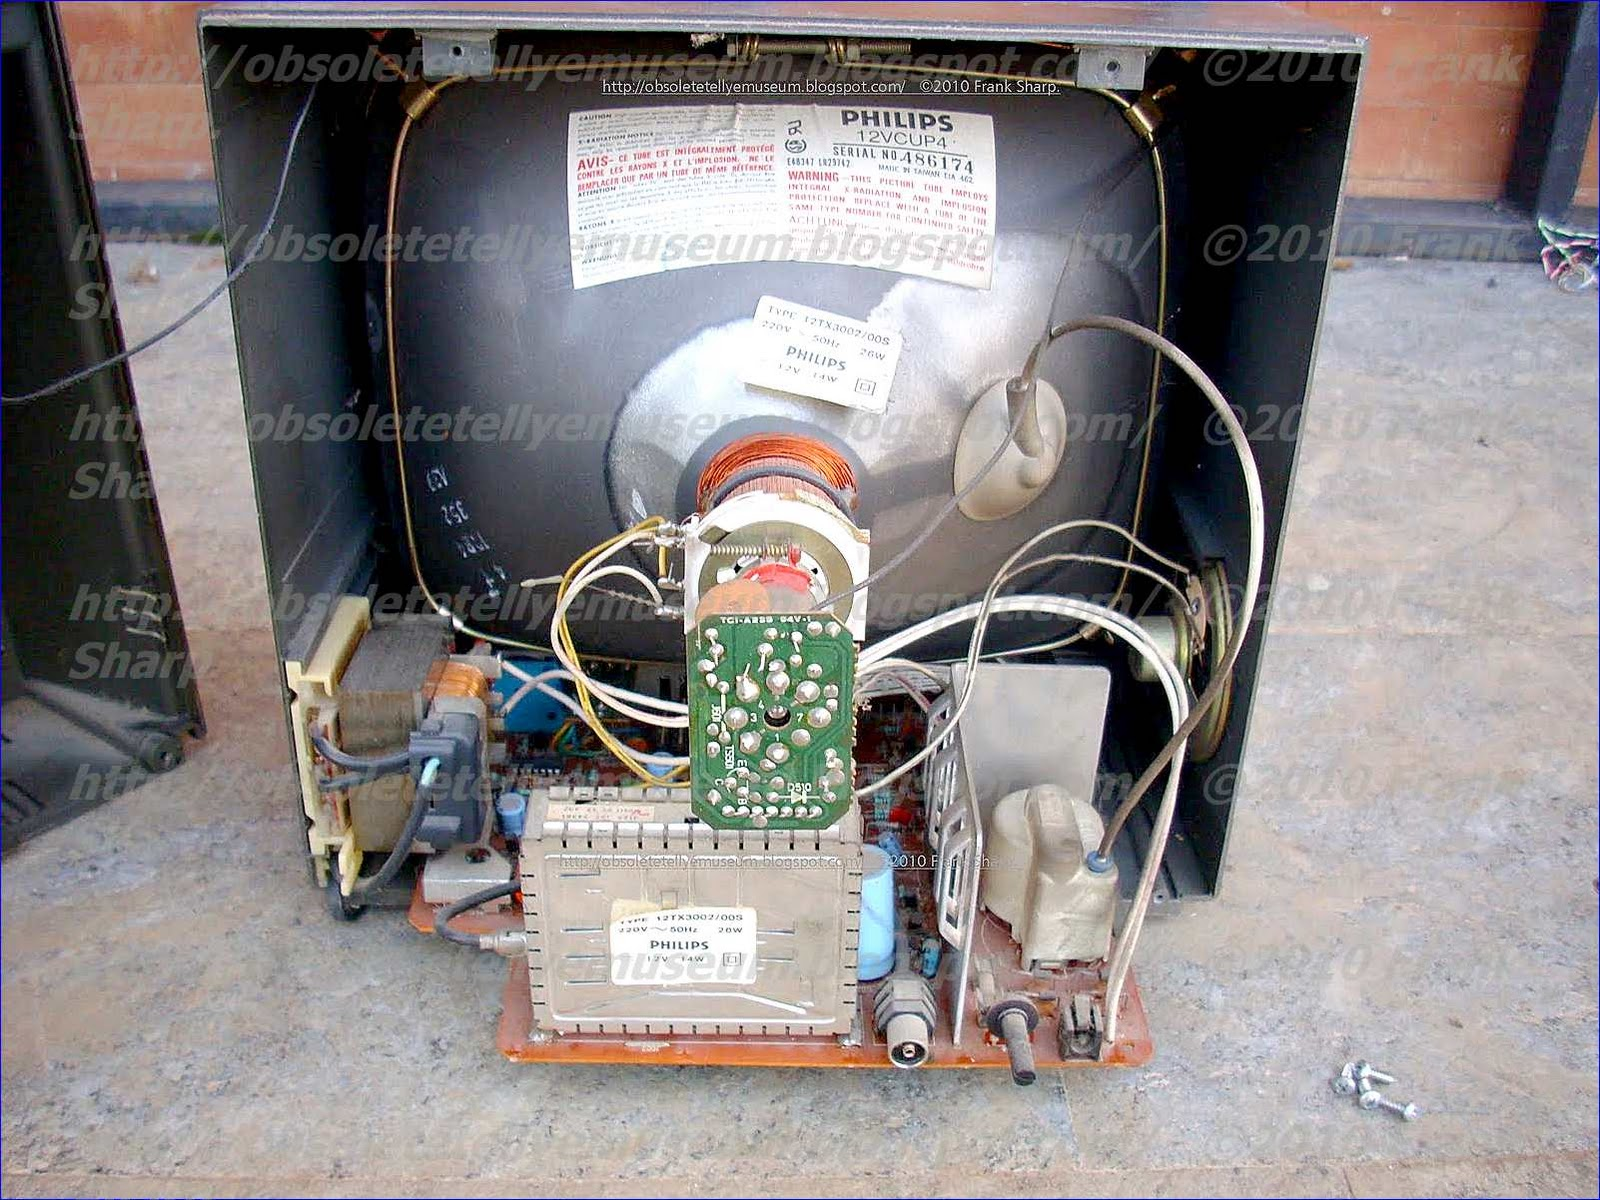 Obsolete Technology Tellye !: PHILIPS 12TX3002 /00S CHASSIS TX3 ...